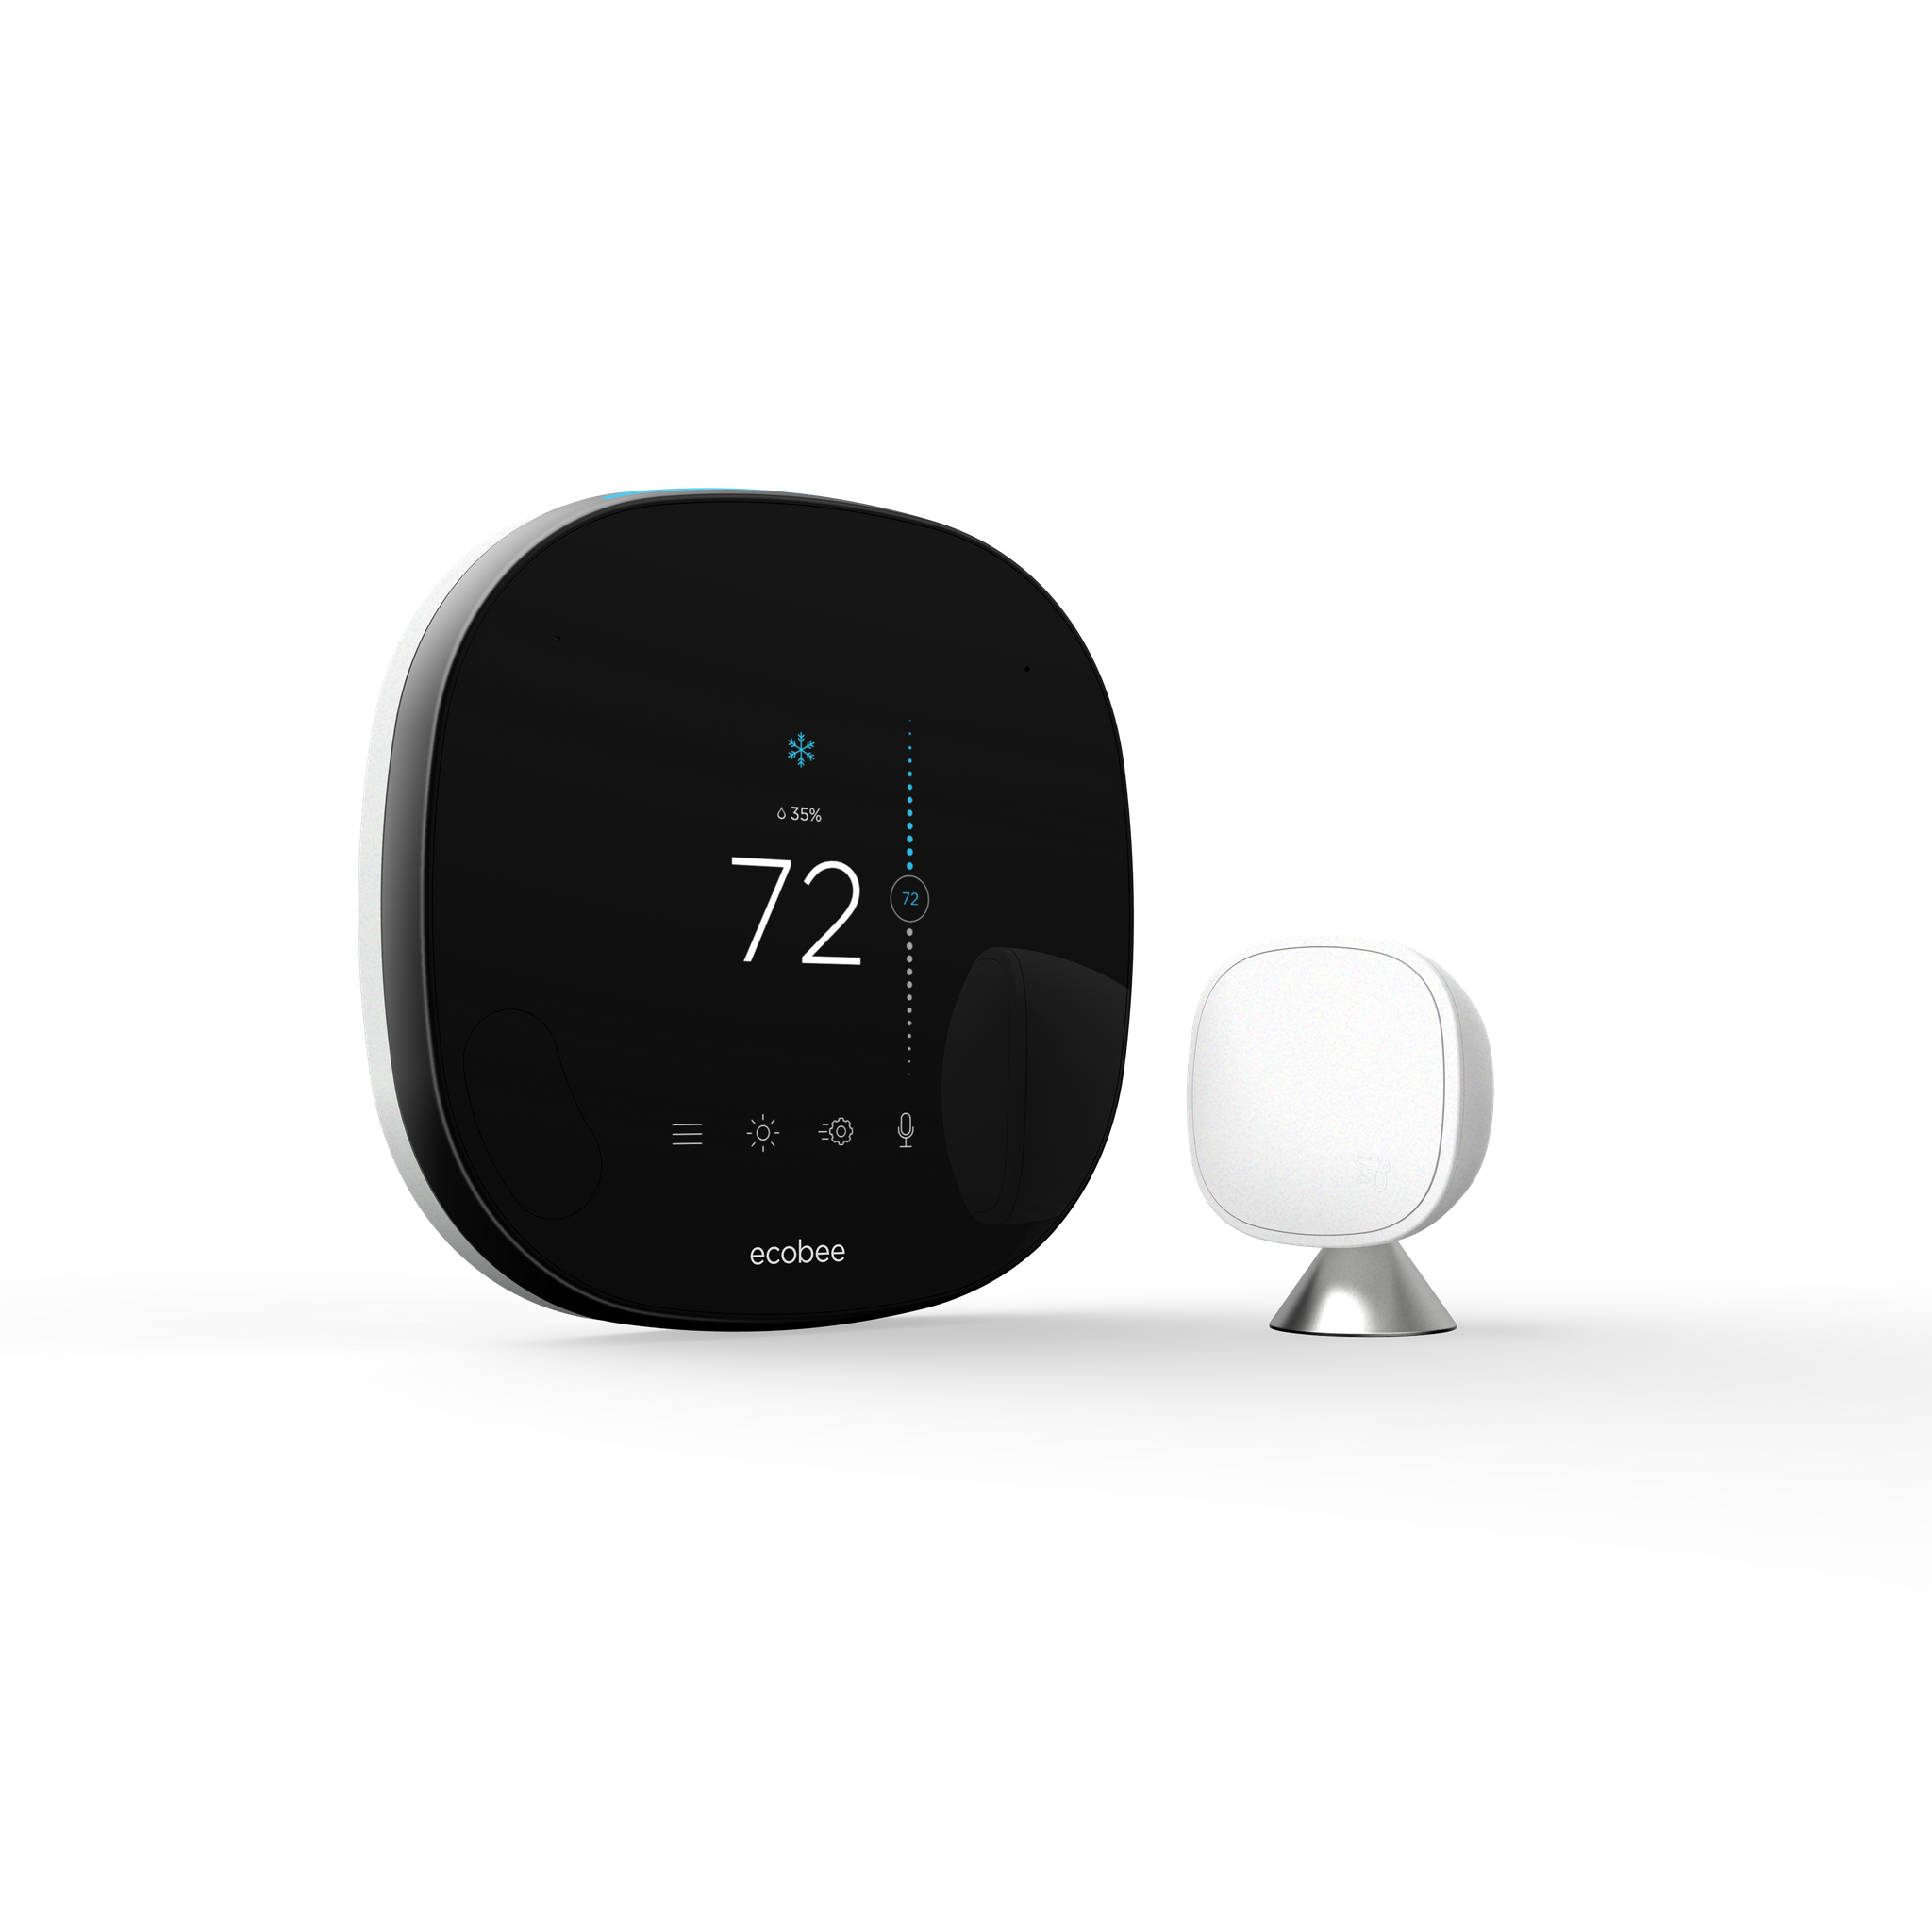 Ecobee Pro Smart Thermostats with Voice Control